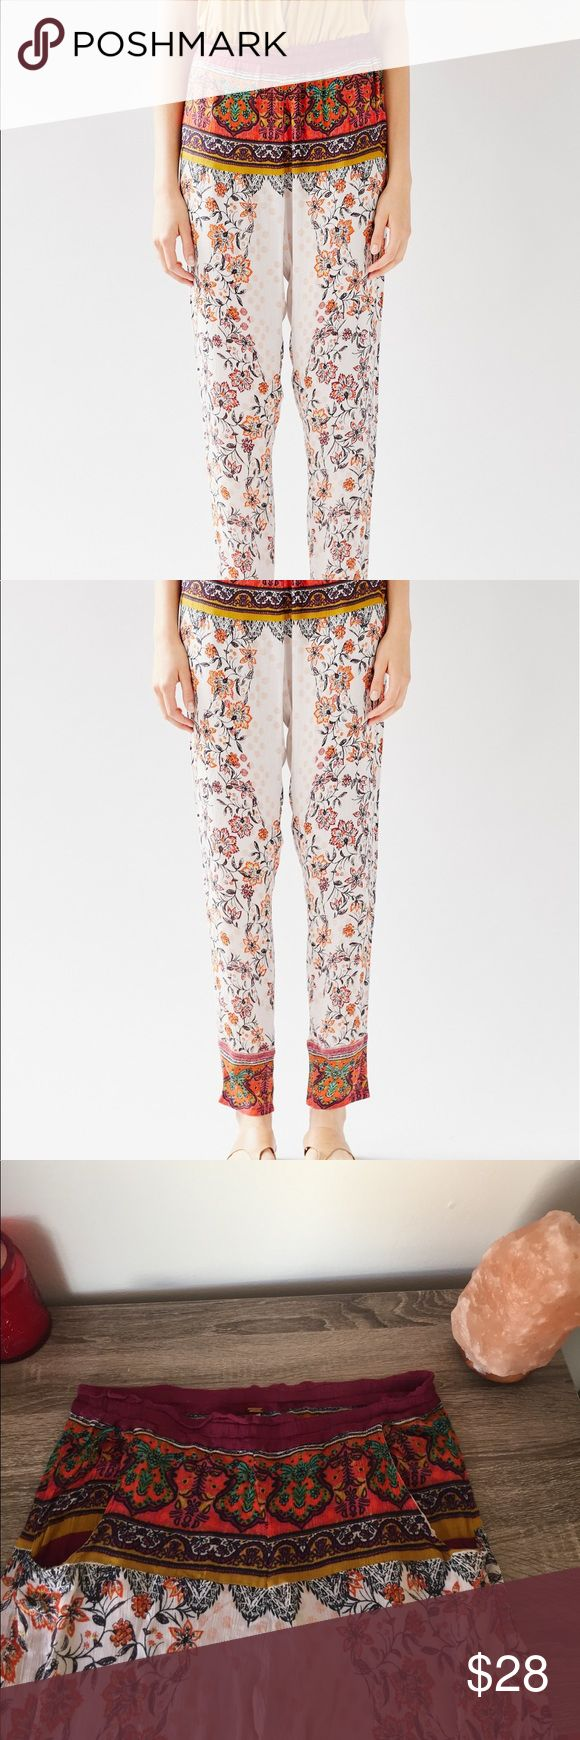 Extreme print Harlem pant Extreme print Harlem pant⚡️ super comfy and fashionable ⚡️ Free People Pants